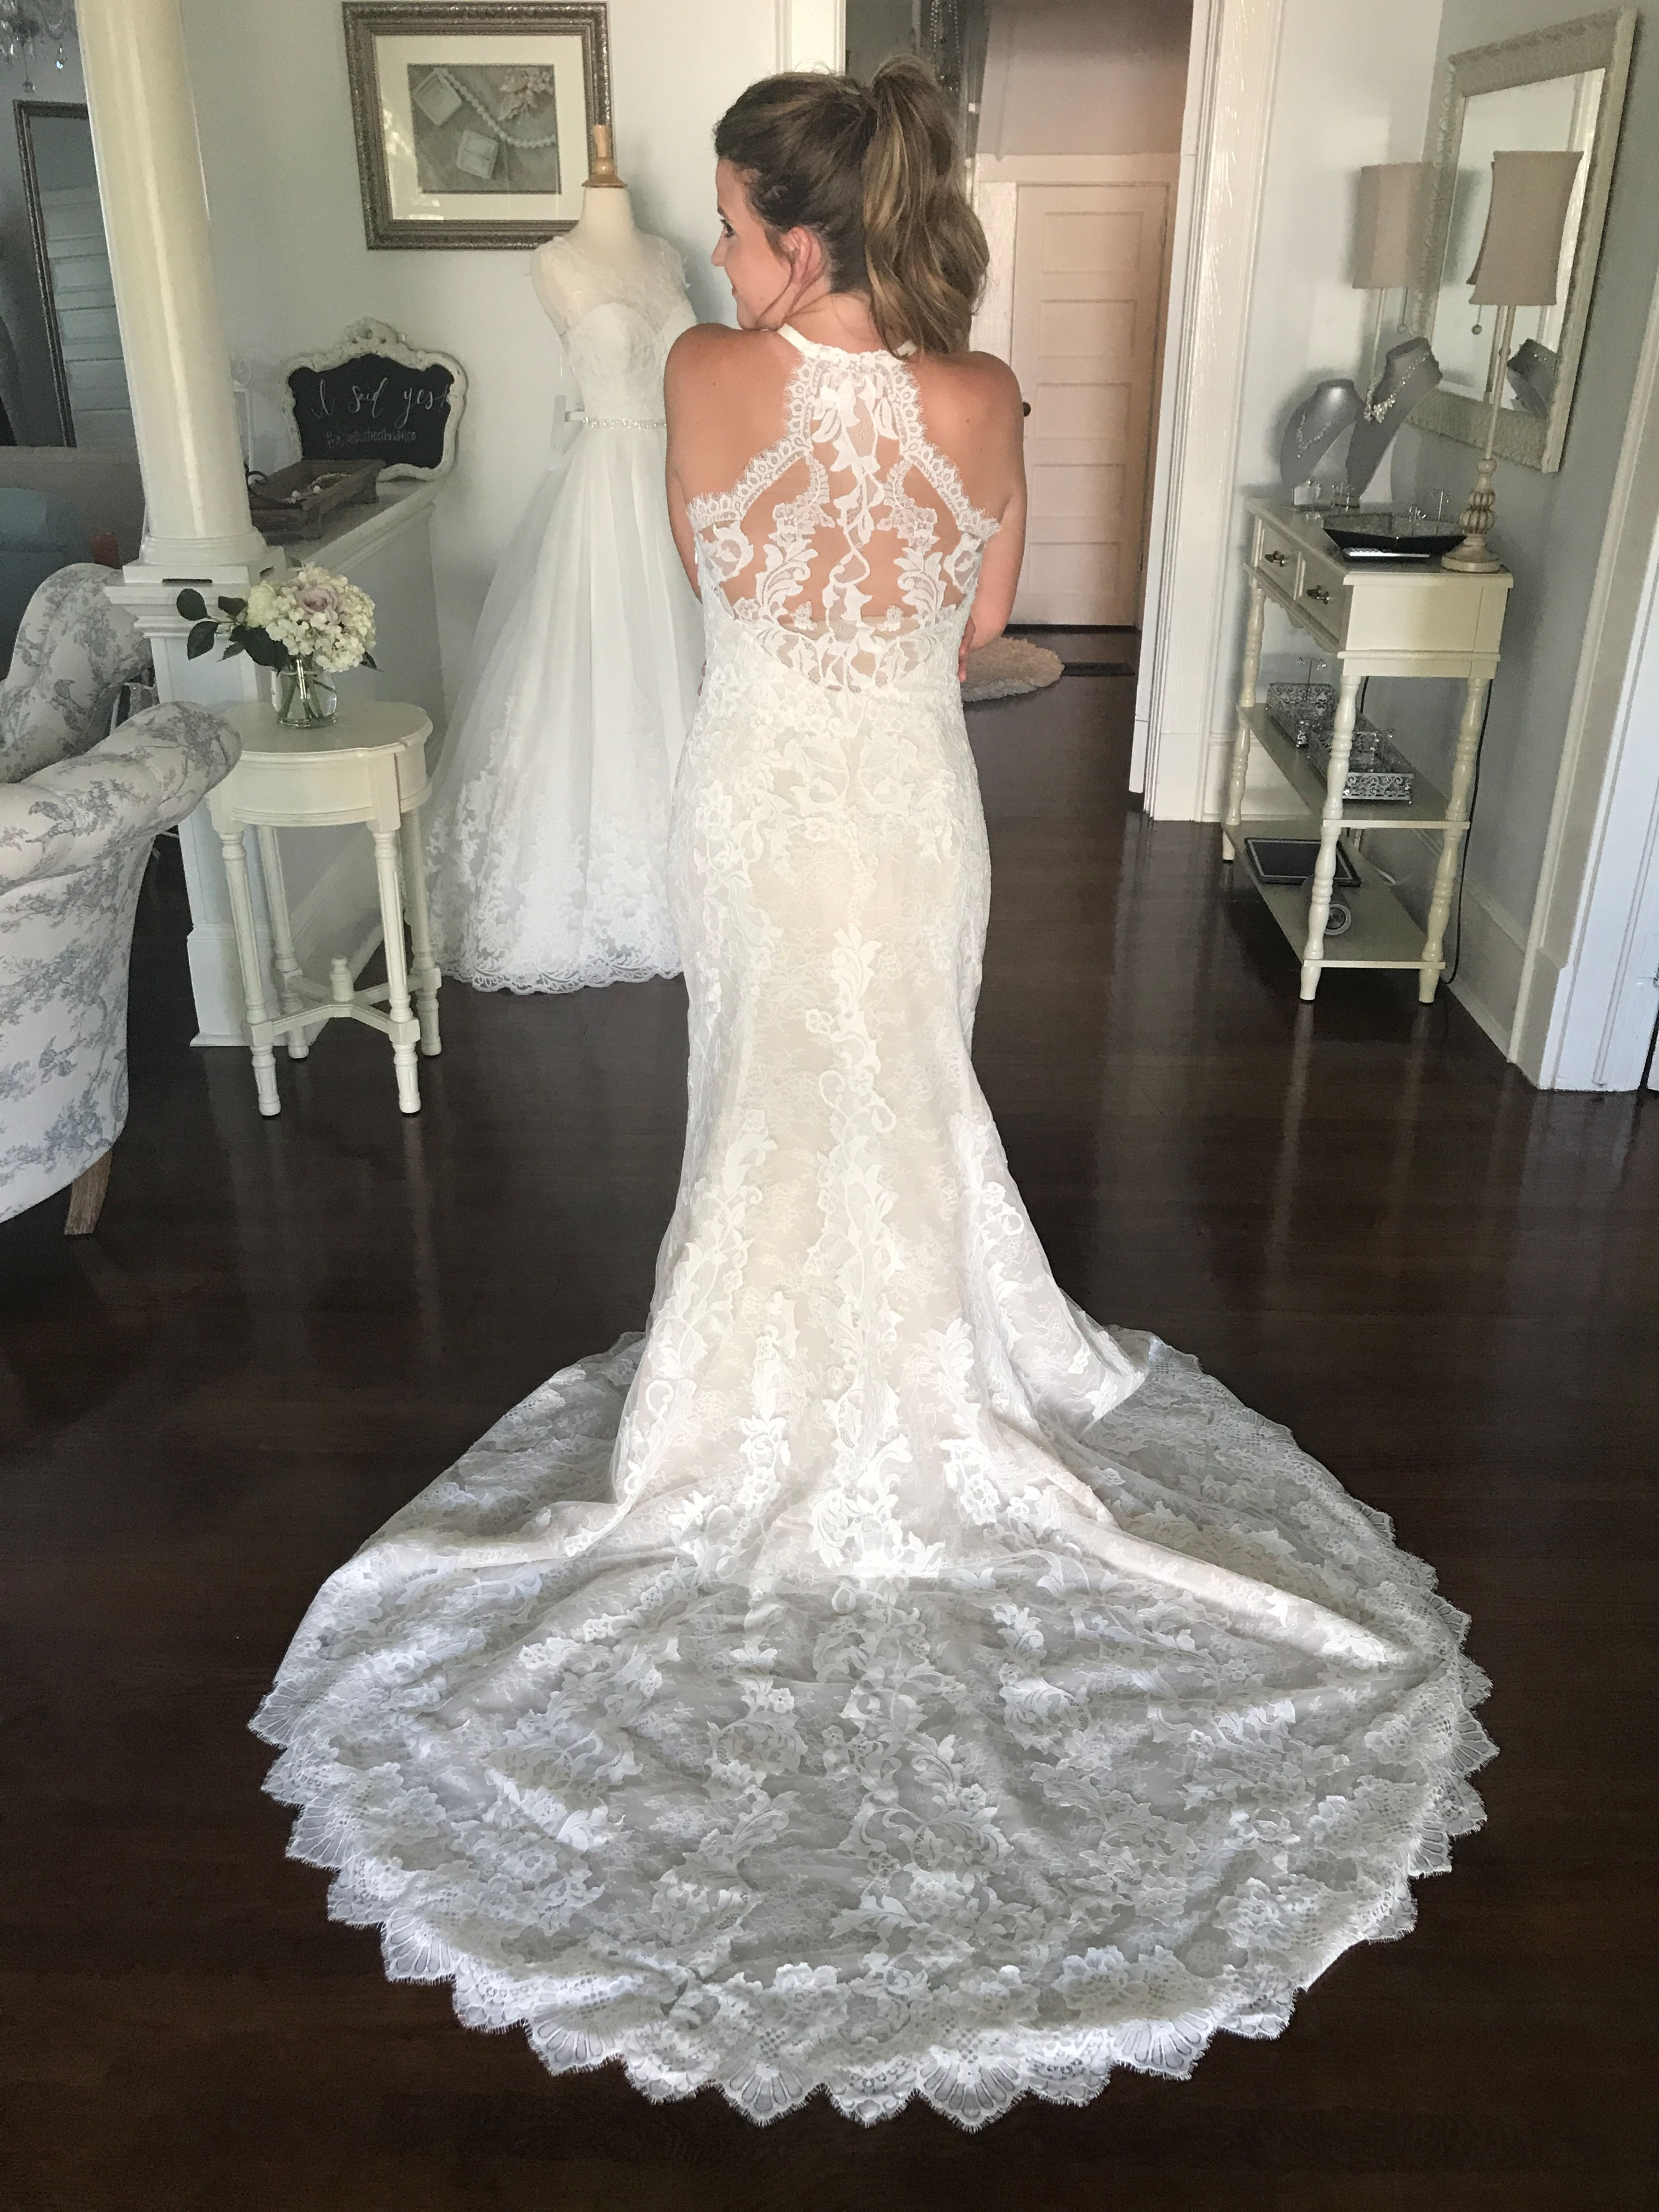 Aspen Full Lace Fit N Flare Wedding Dress With Amazing Lace Train Fit N Flare Wedding Dress Wedding Dresses Atlanta Wedding Dresses [ 5376 x 4032 Pixel ]